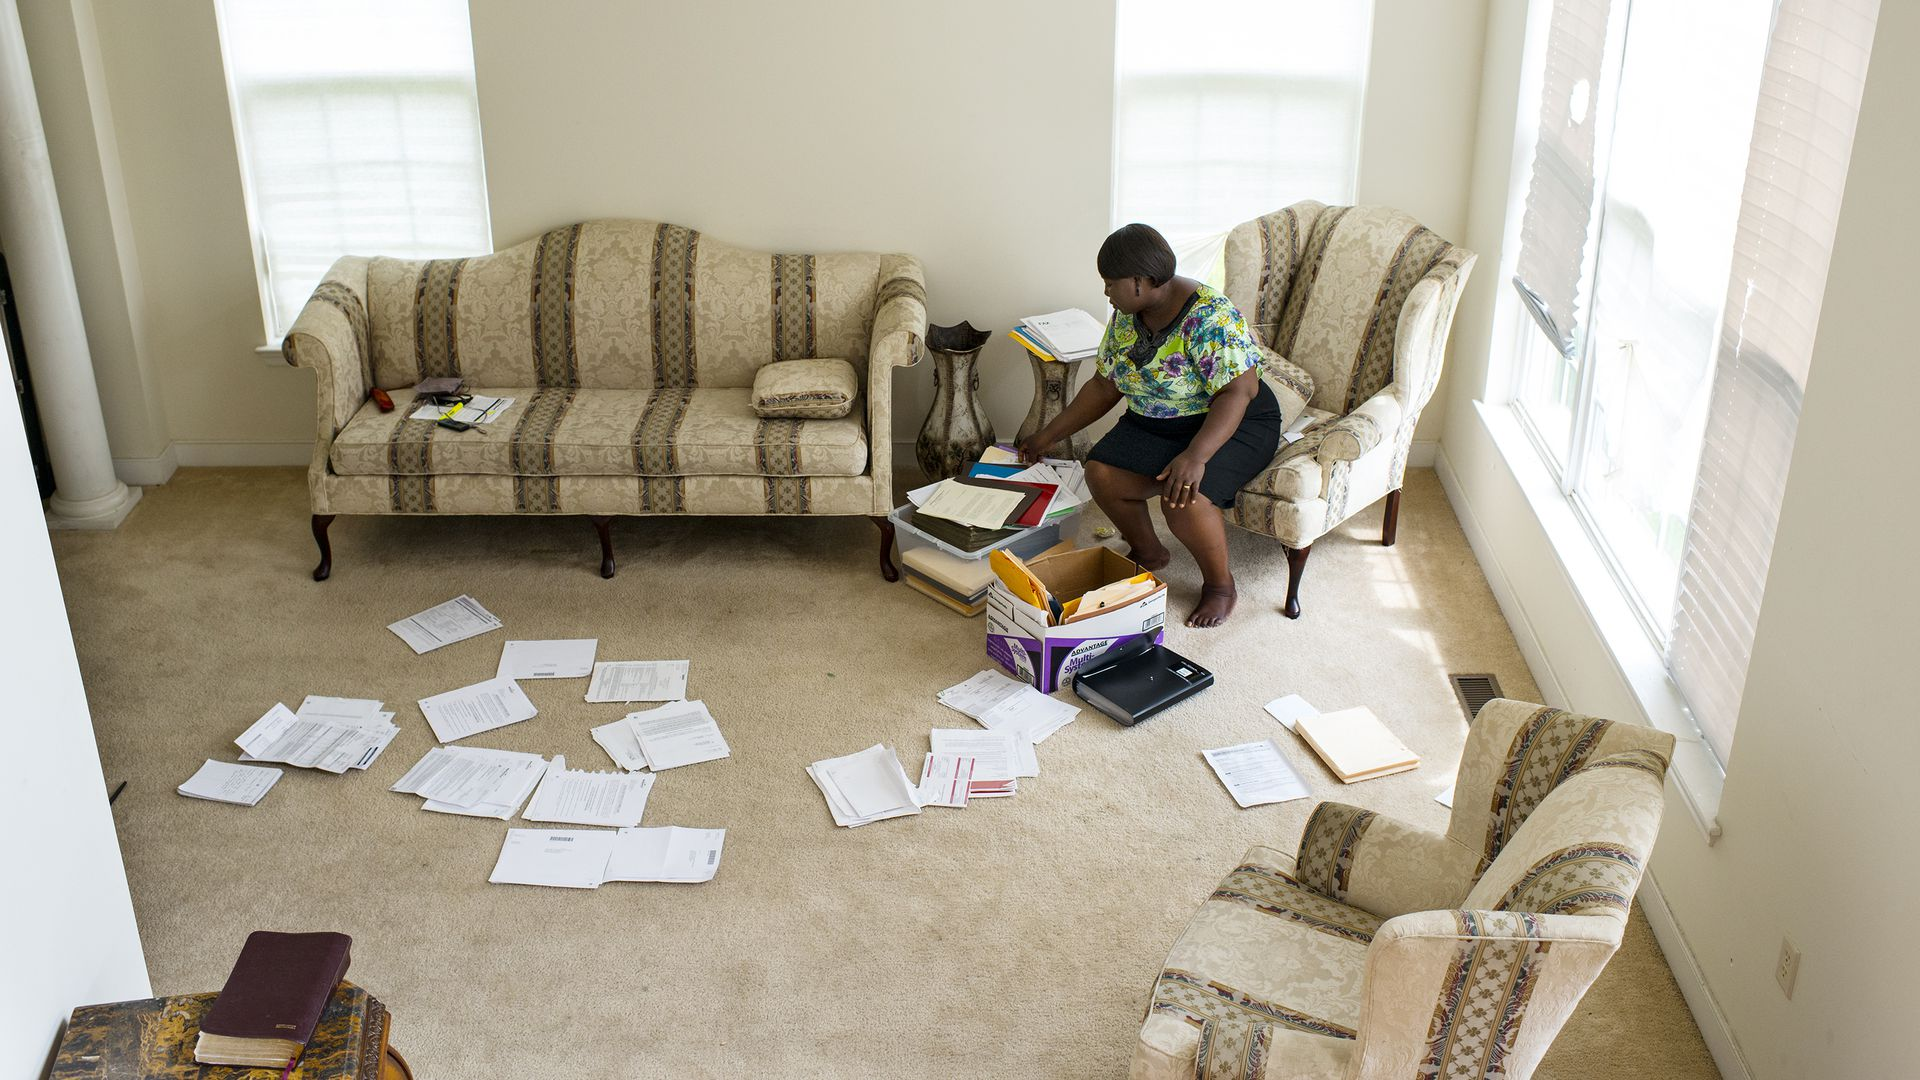 A woman sits in a room with papers scattered on the floor.